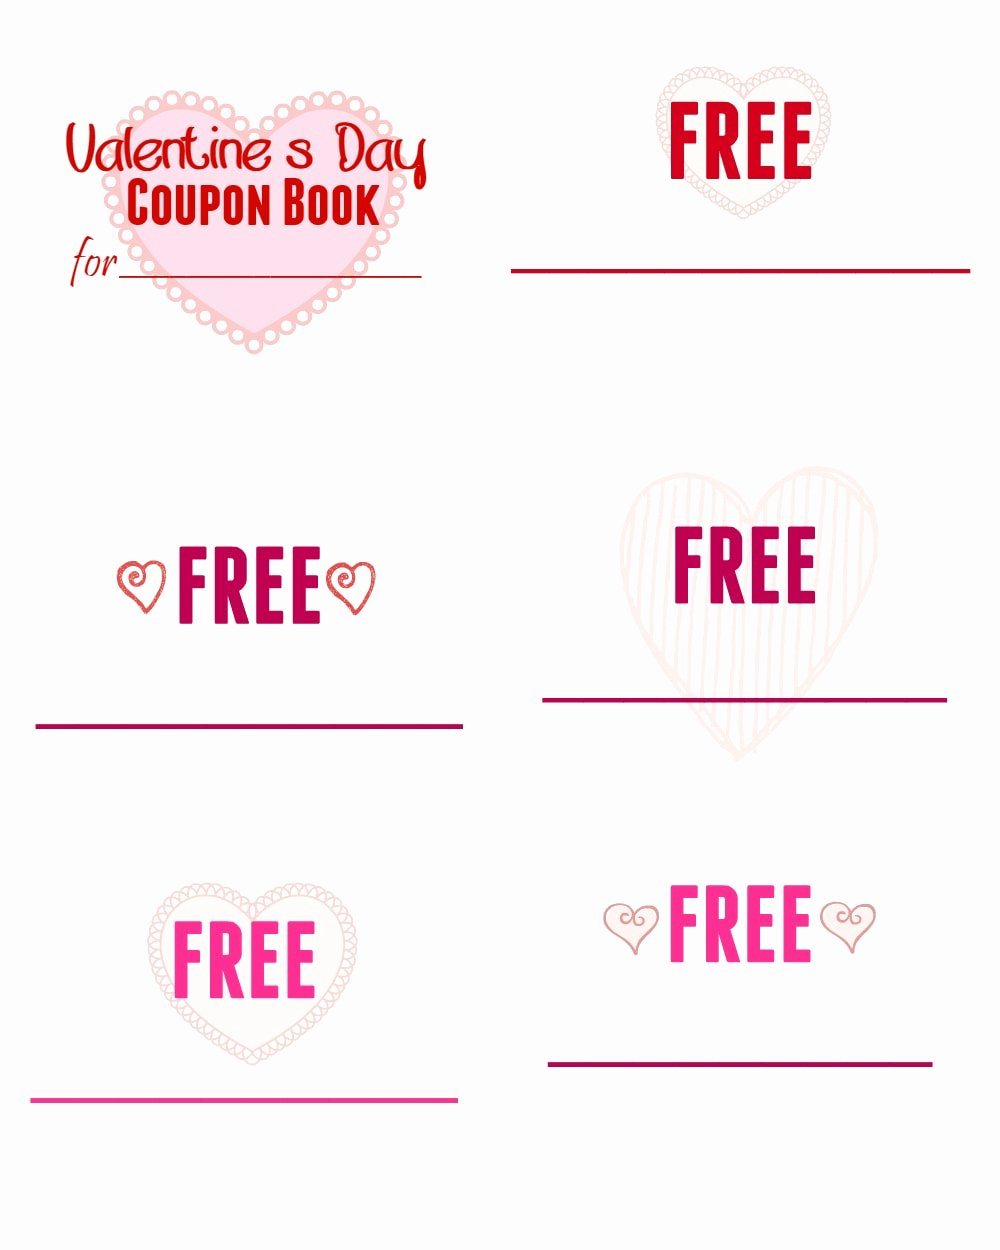 Valentine Day Coupon Template Awesome Printable Valentine S Day Coupon Book for Kids Mom